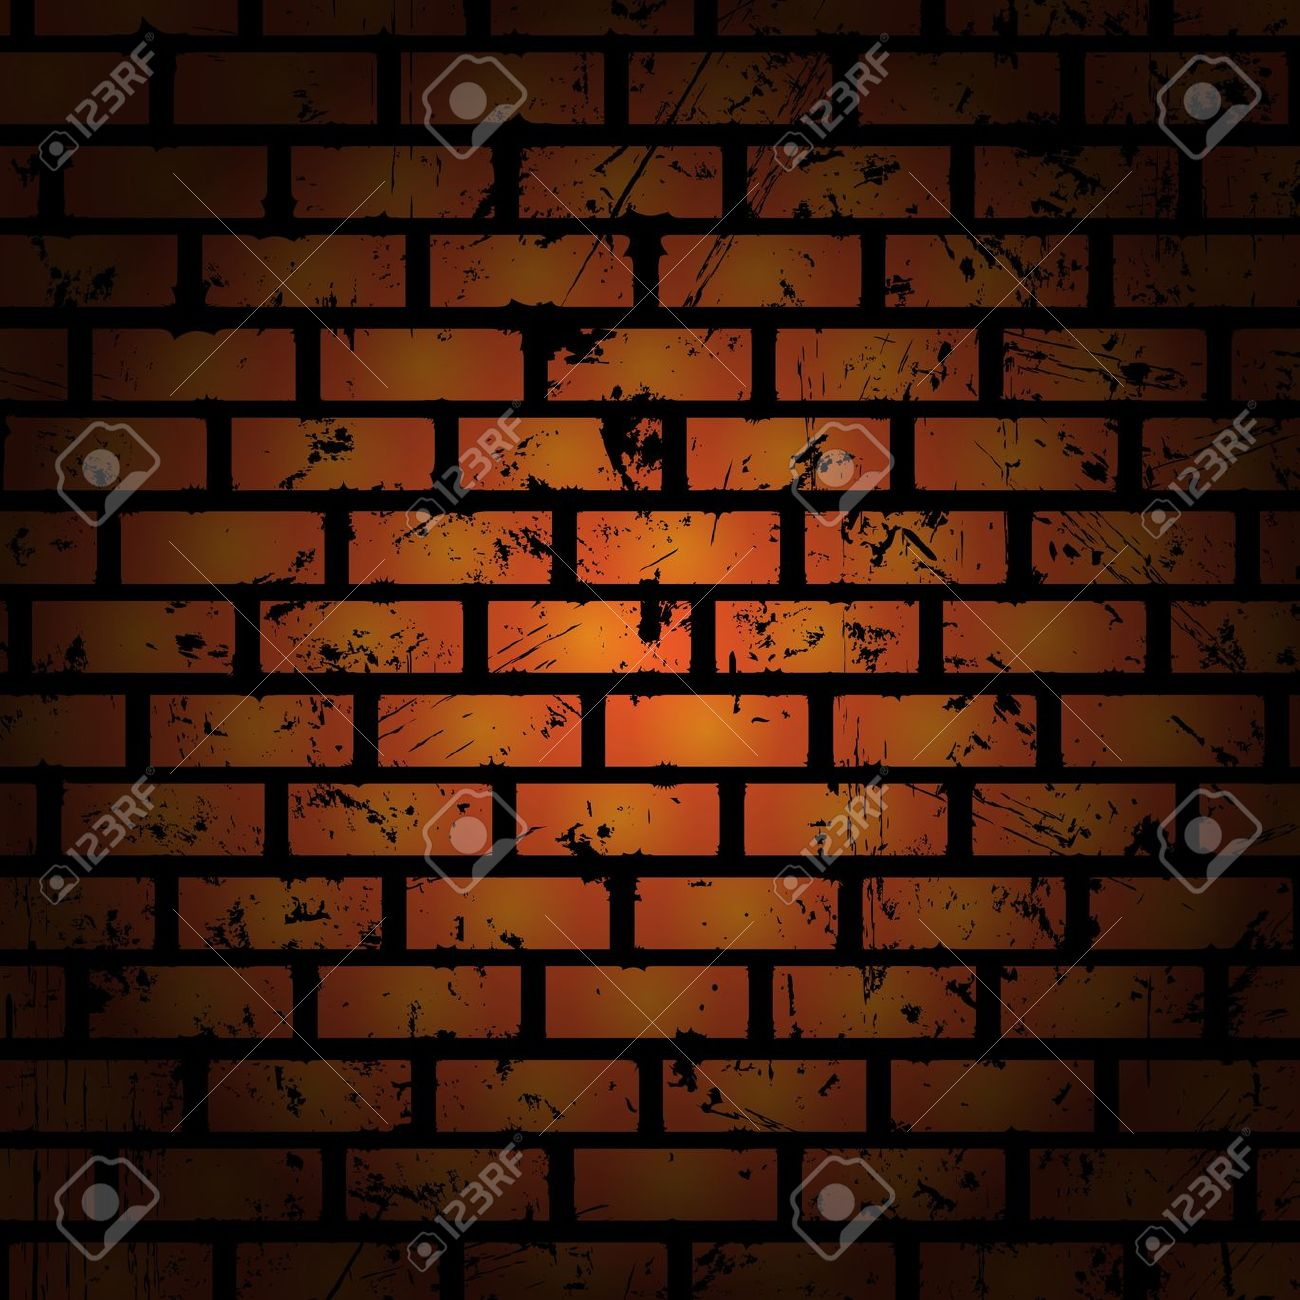 Red Clay Bricks Images & Stock Pictures. Royalty Free Red Clay.